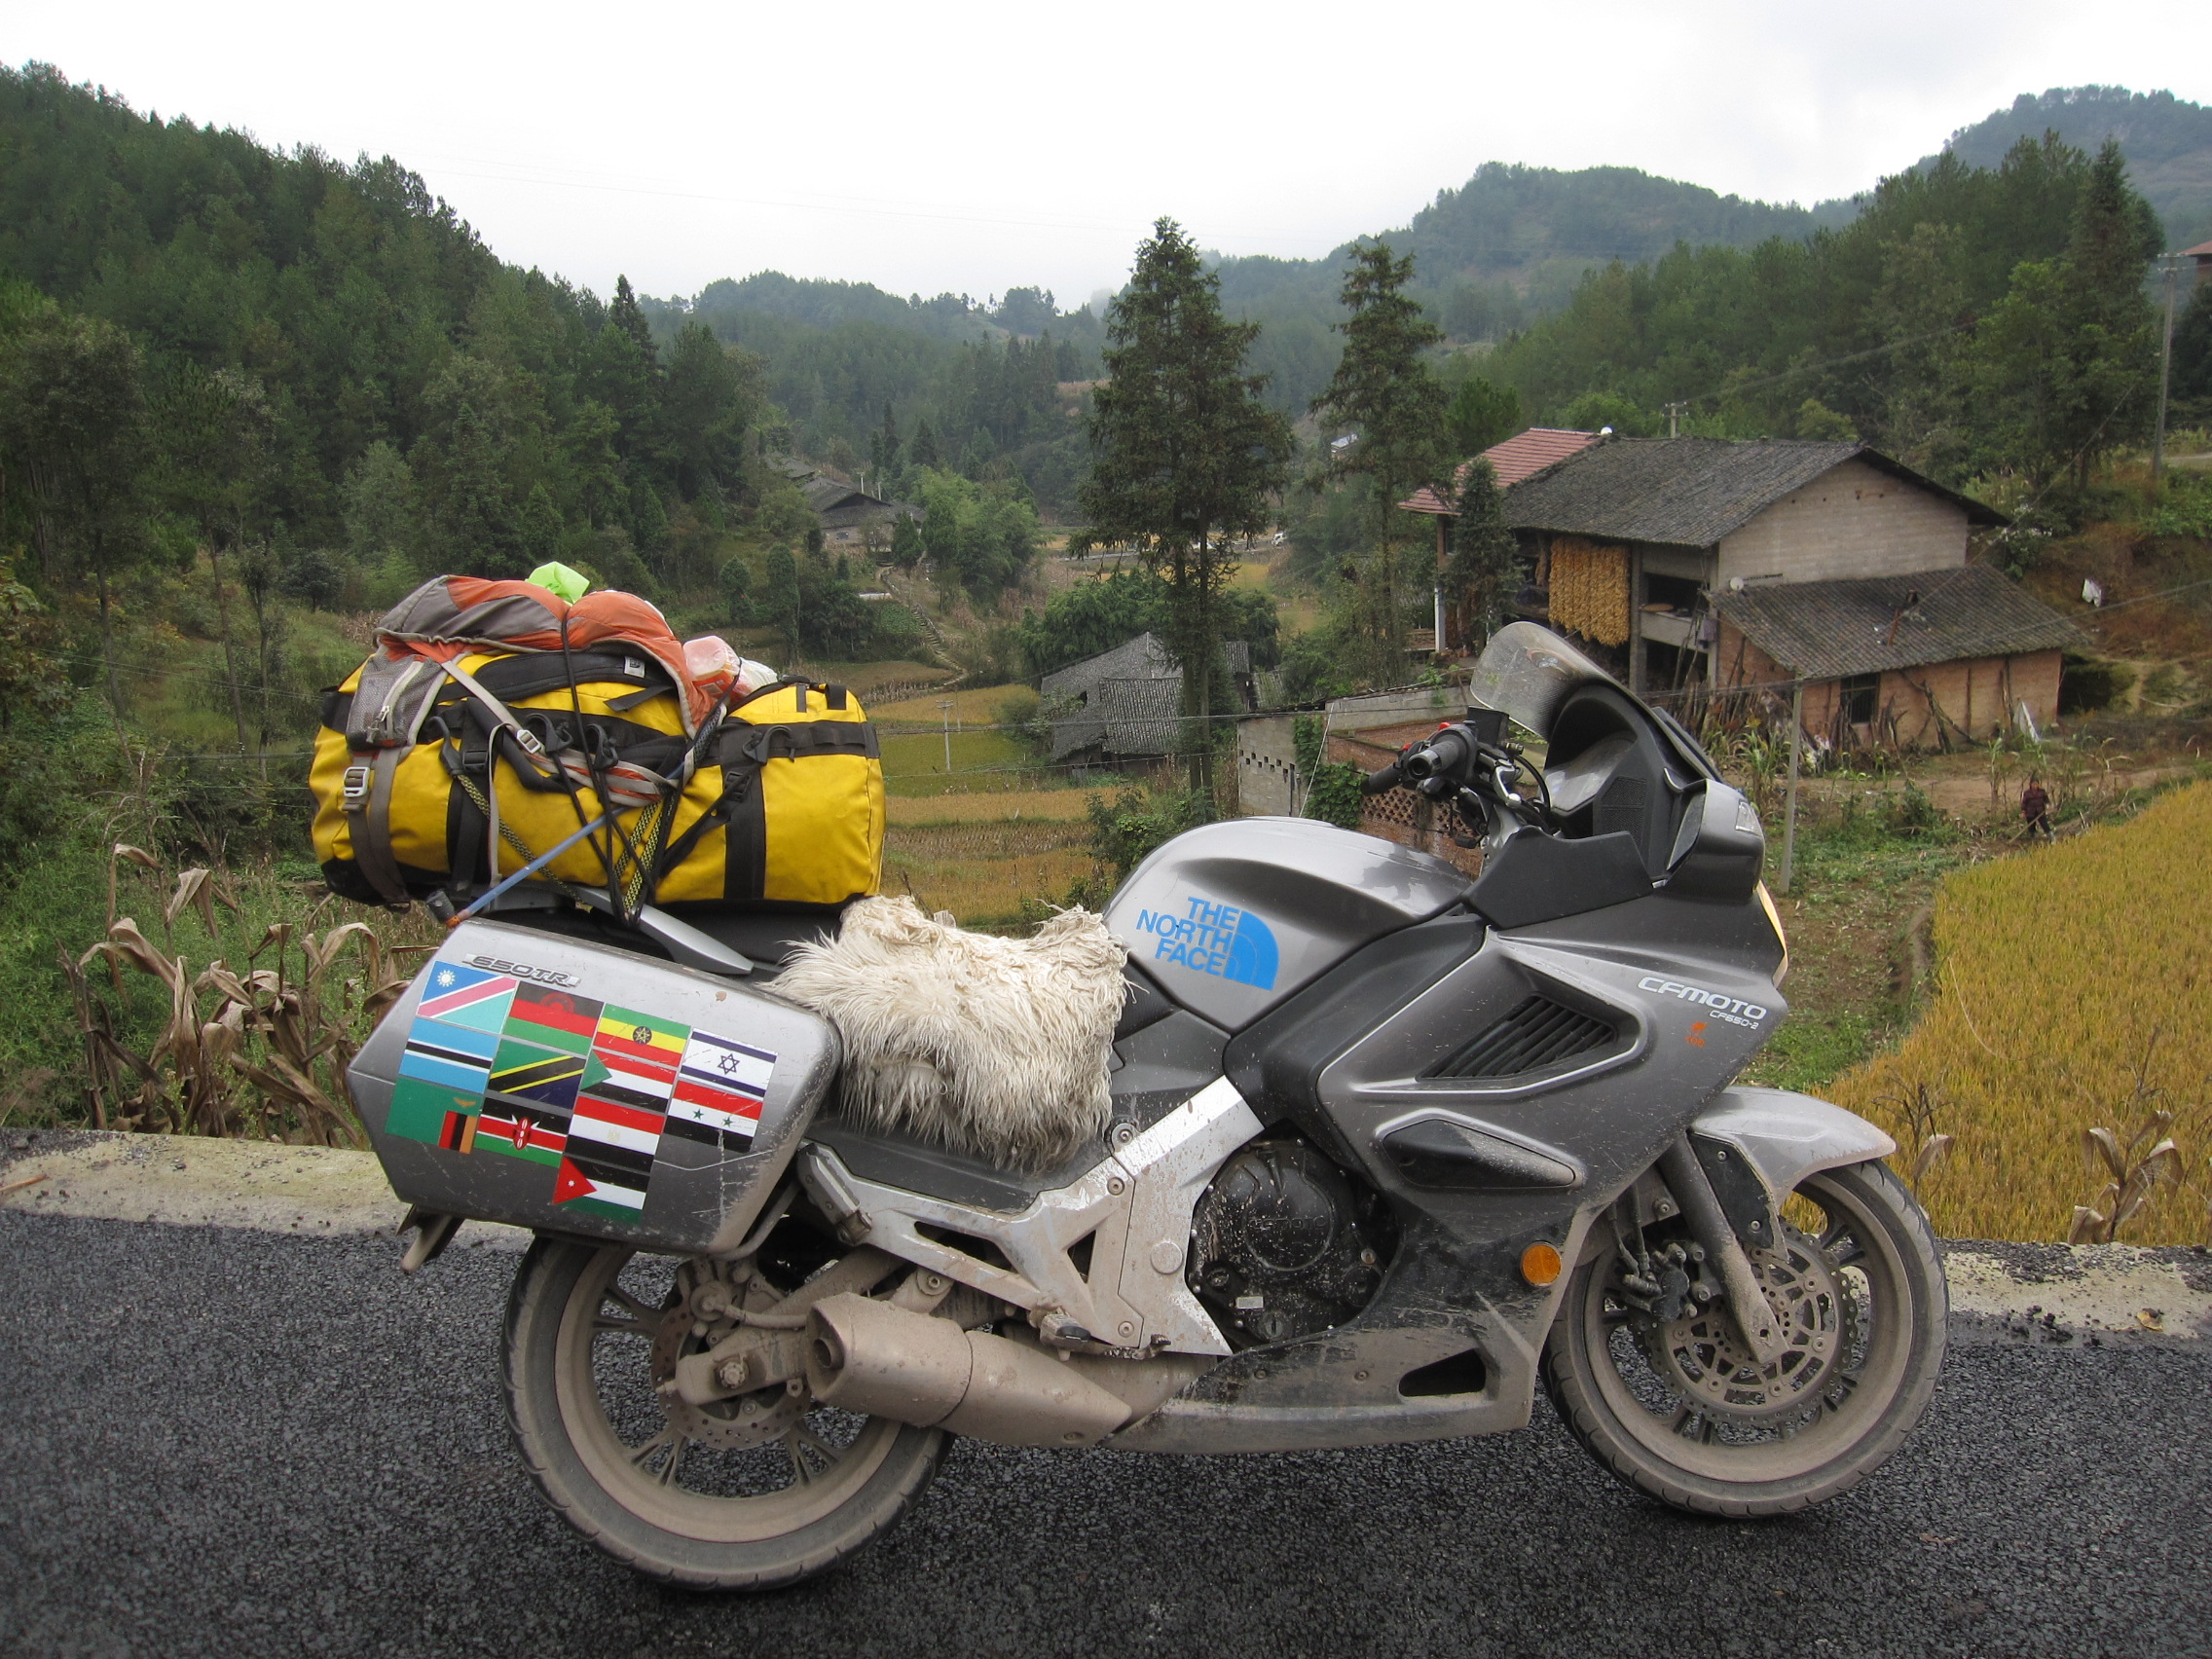 A portrait of my super Chinese motorcycle in the heart of rural China.